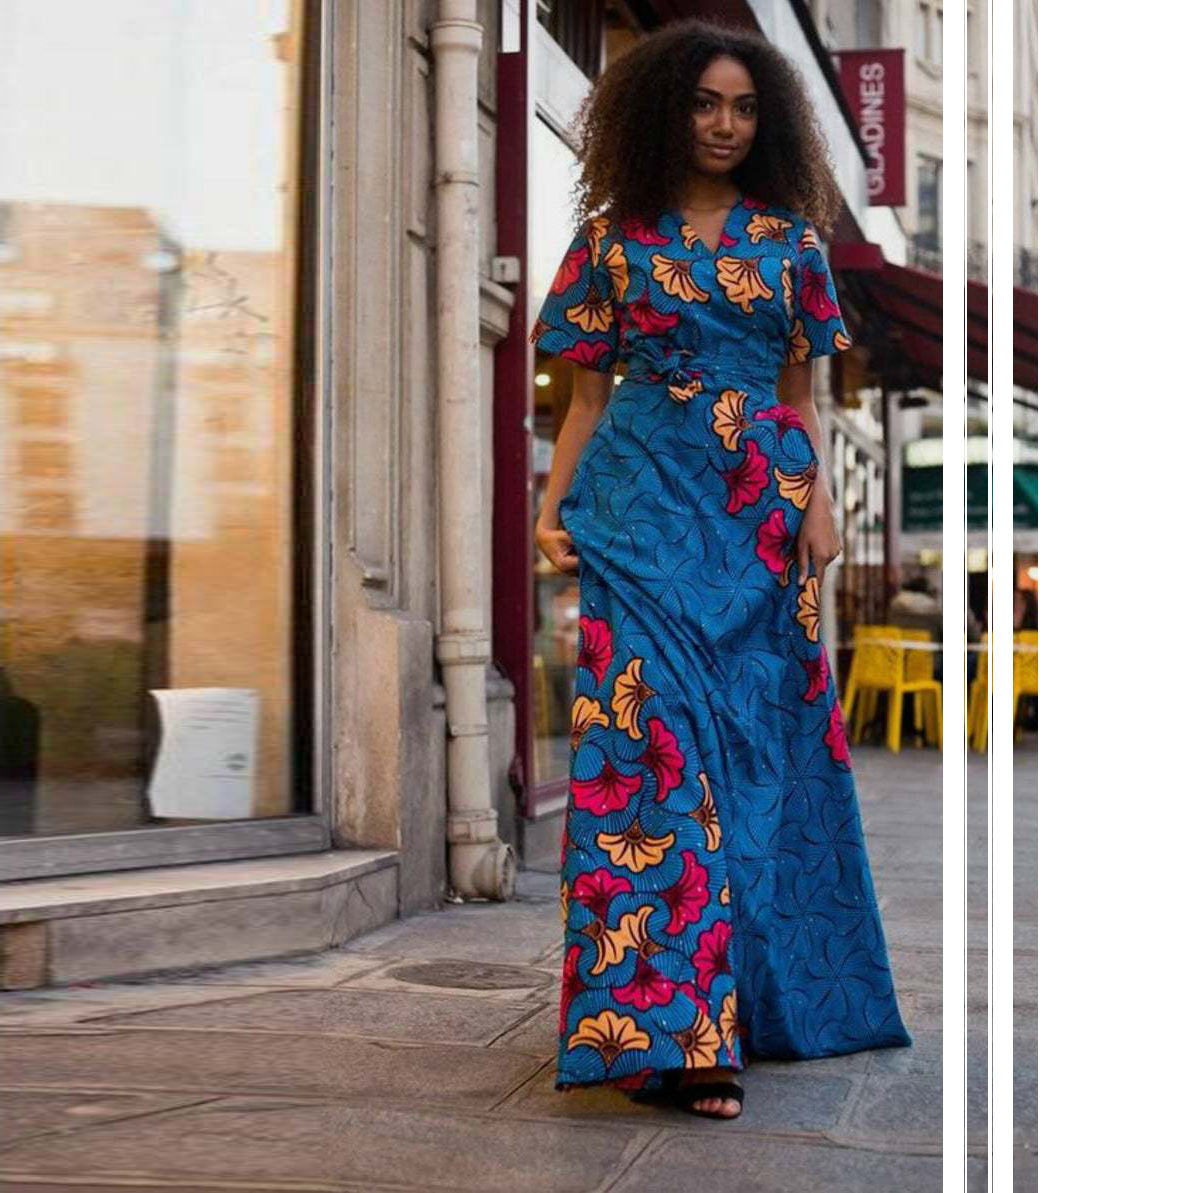 MXCHAN 2020 Hot styles women african long dresses for women african dress patterns women's